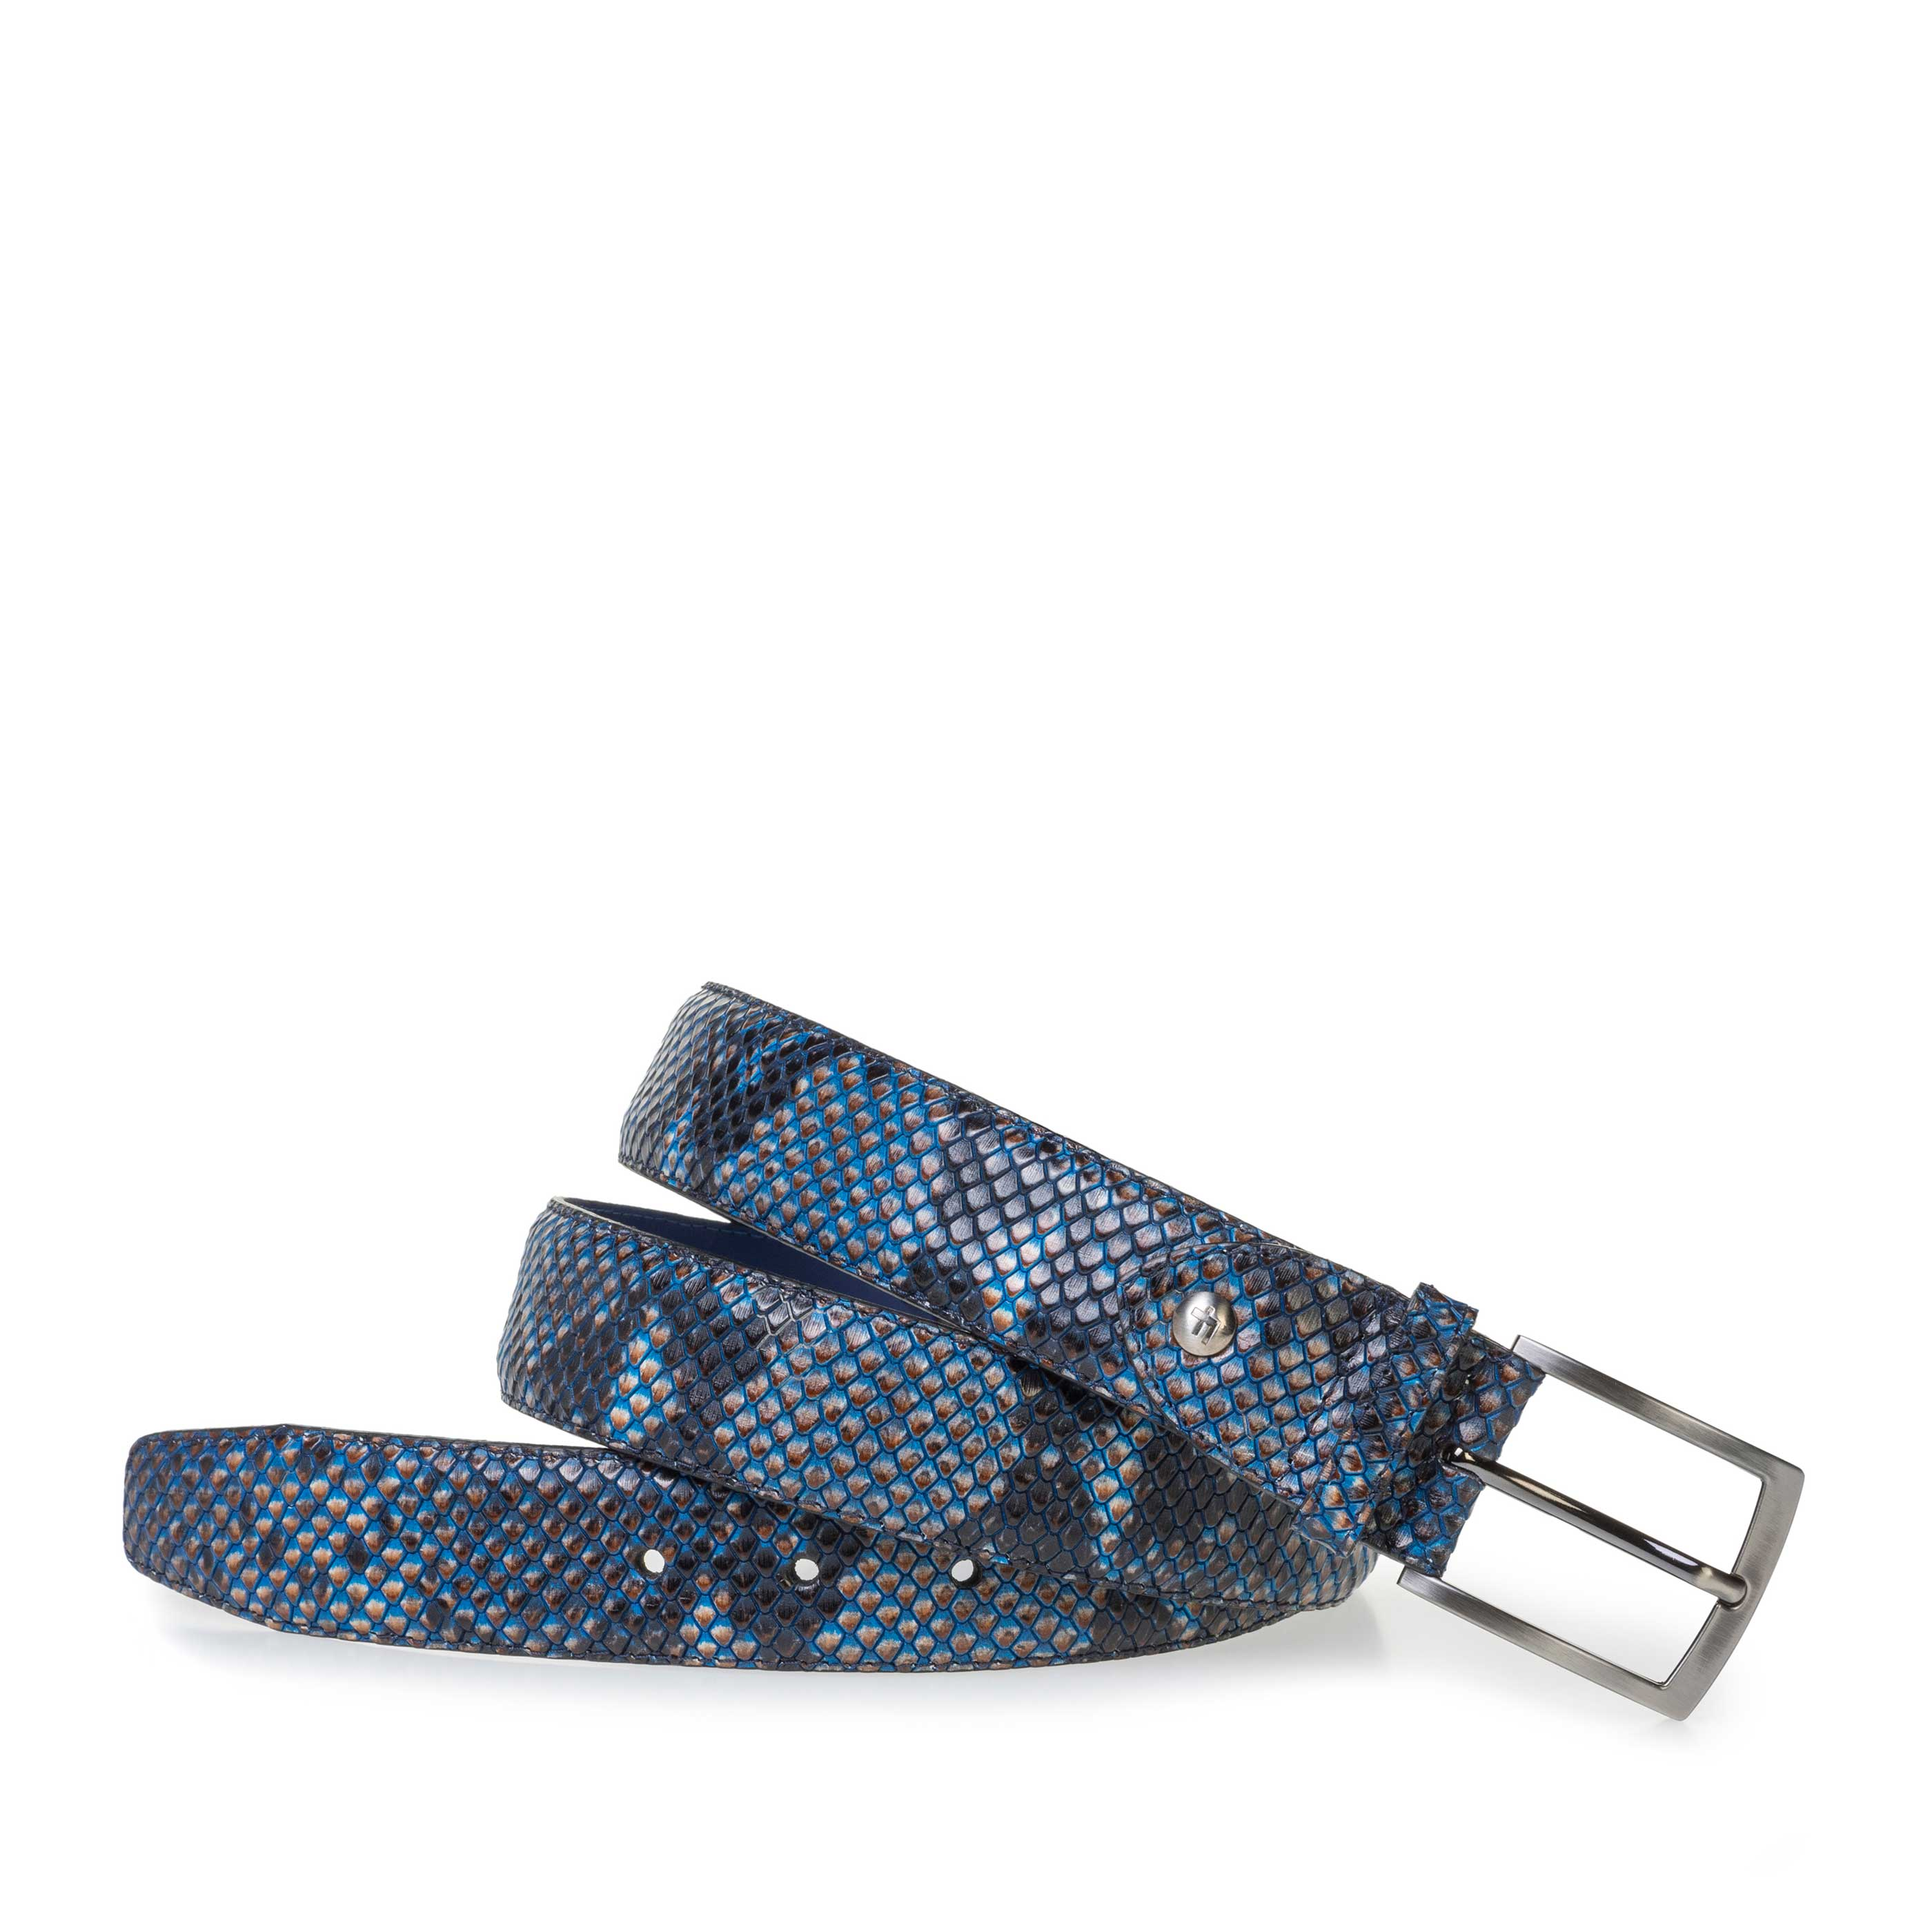 75200/80 - Blue leather belt with snake print